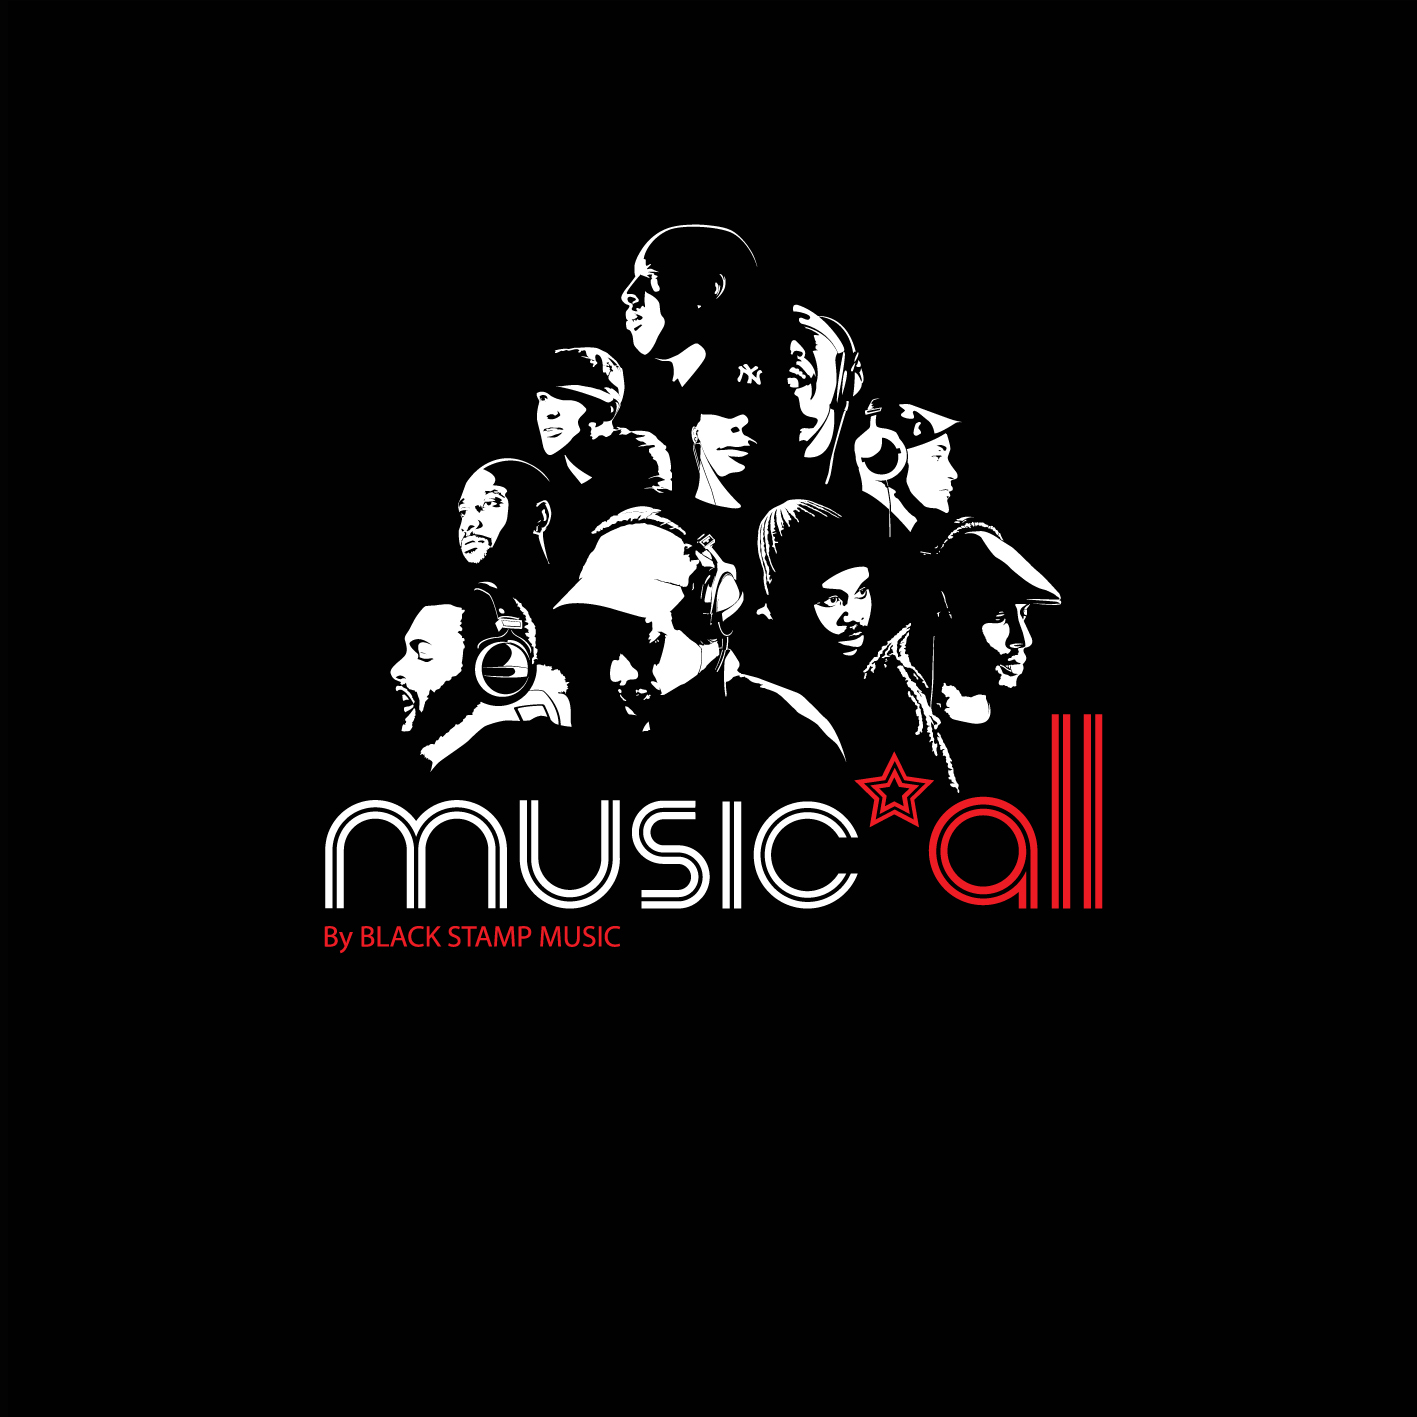 MUSIC'ALL